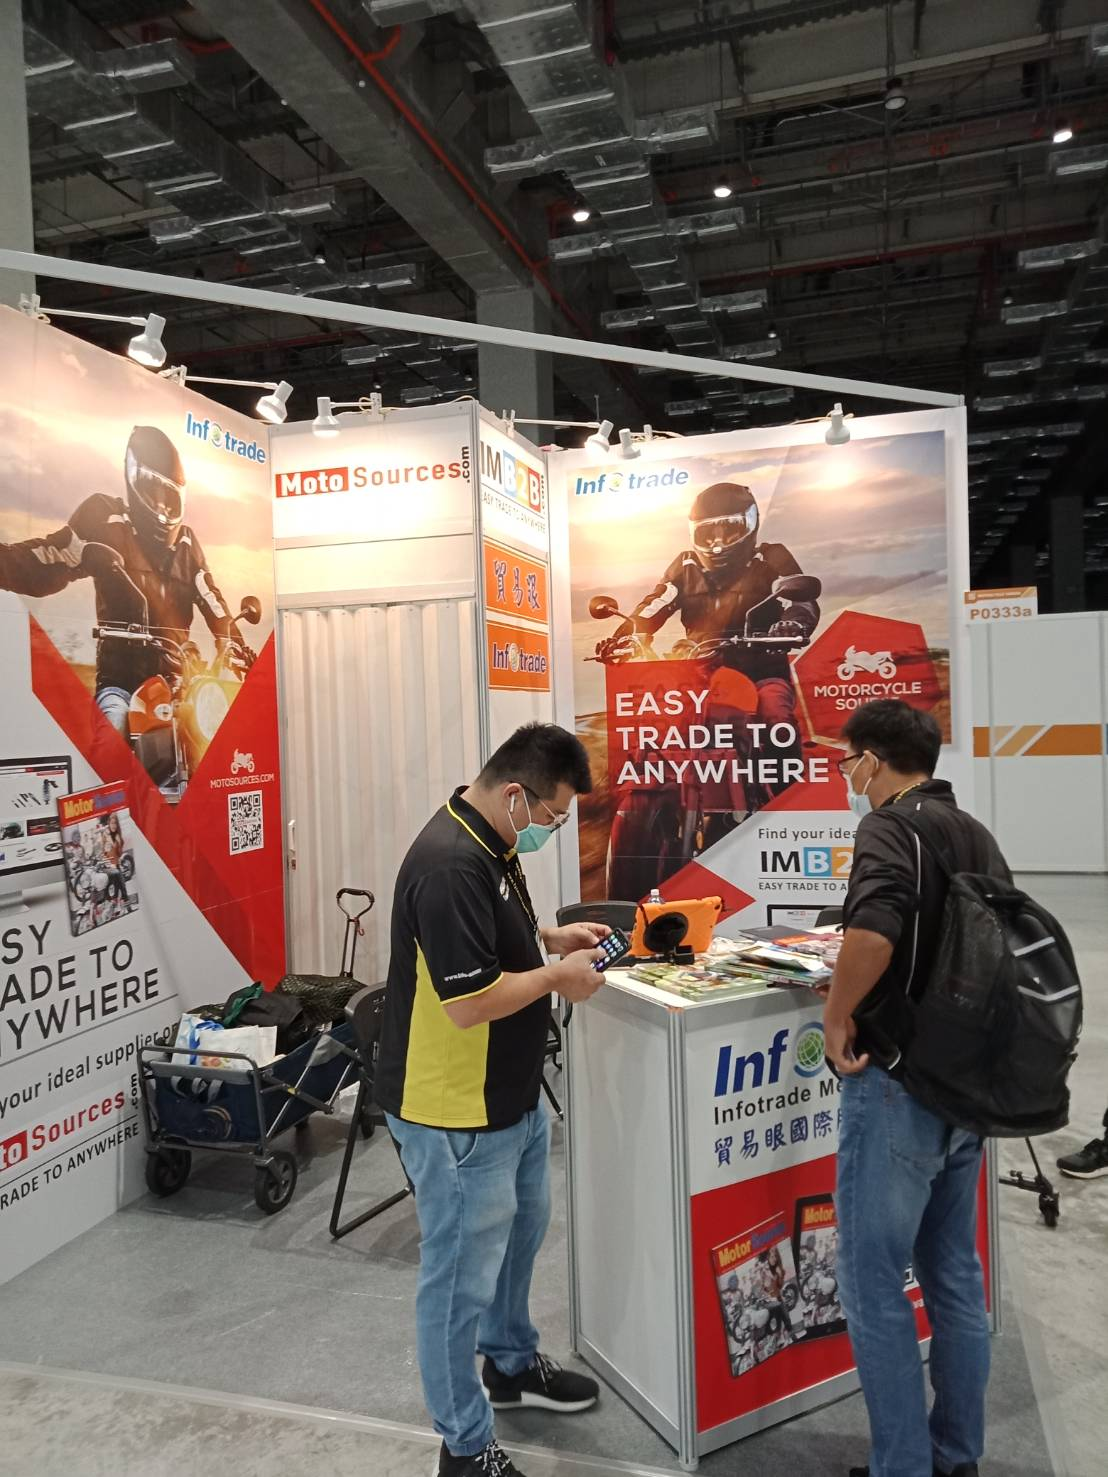 https://storage.googleapis.com/www.taiwantradeshow.com.tw/activity-photo/202010/T-81151582-name.jpg